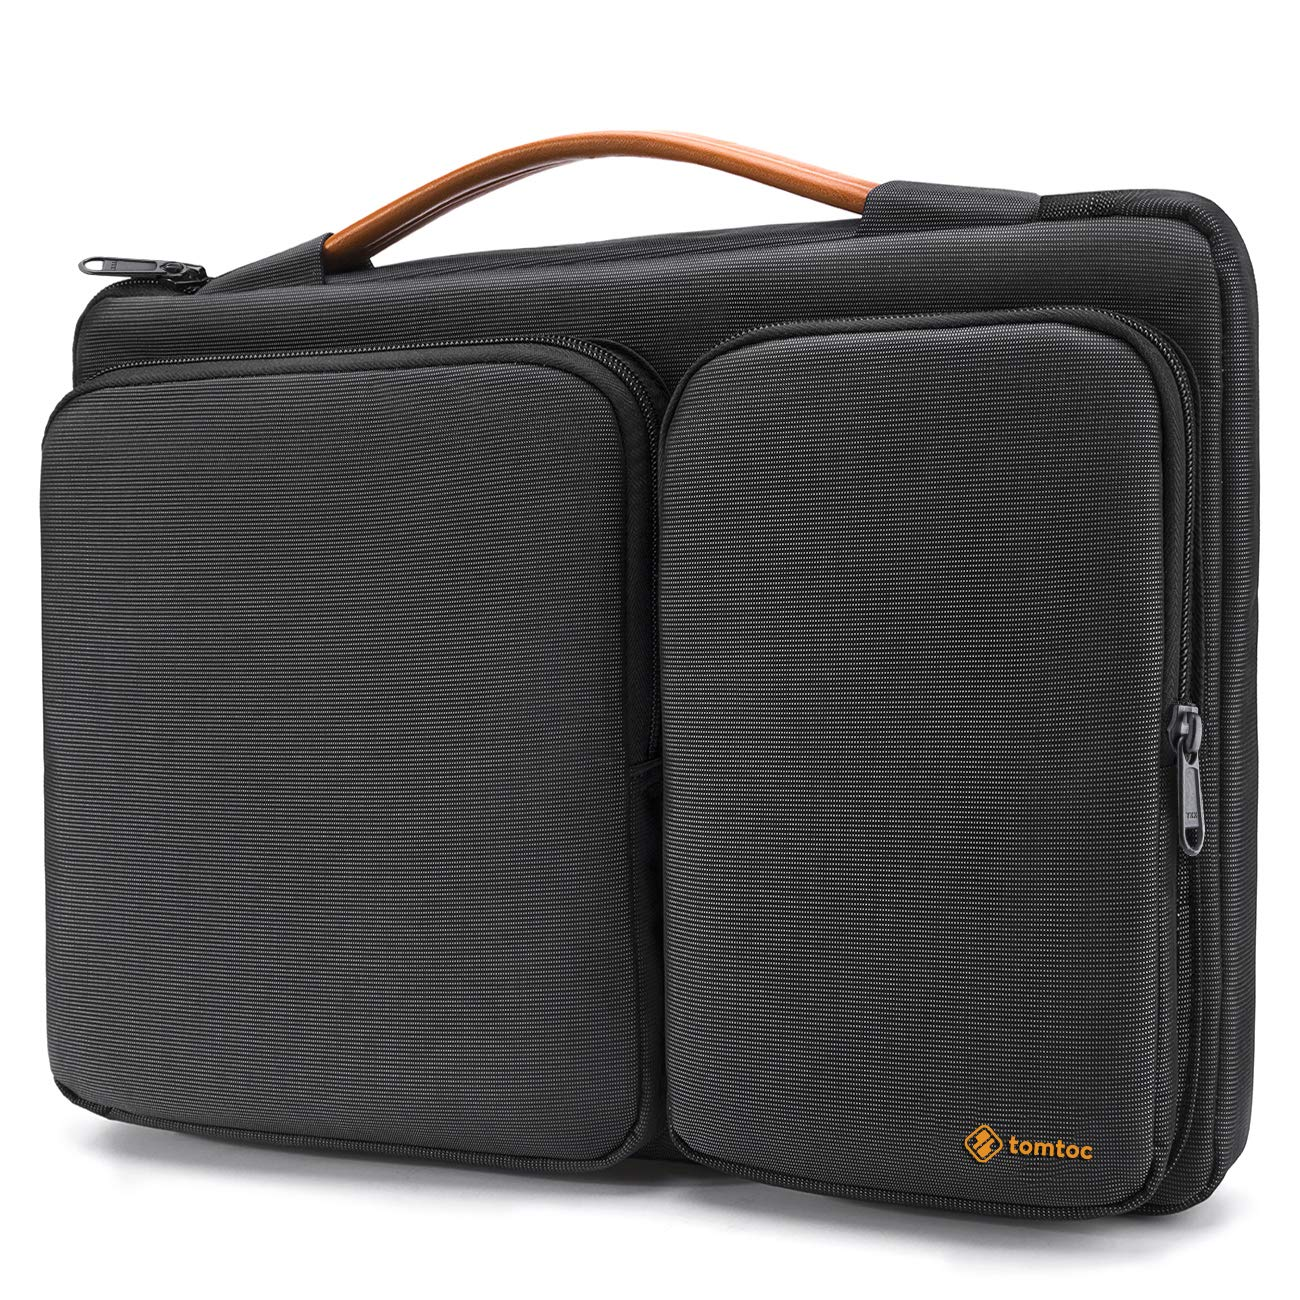 tomtoc 360 Protective 14 Inch Laptop Sleeve for 15-inch New MacBook Pro w/Touch Bar (A1990 A1707), ThinkPad X1 Yoga (1-4th Gen), 14 HP Dell Acer Chromebook, Surface Laptop 3 15 Inch 2019 by tomtoc